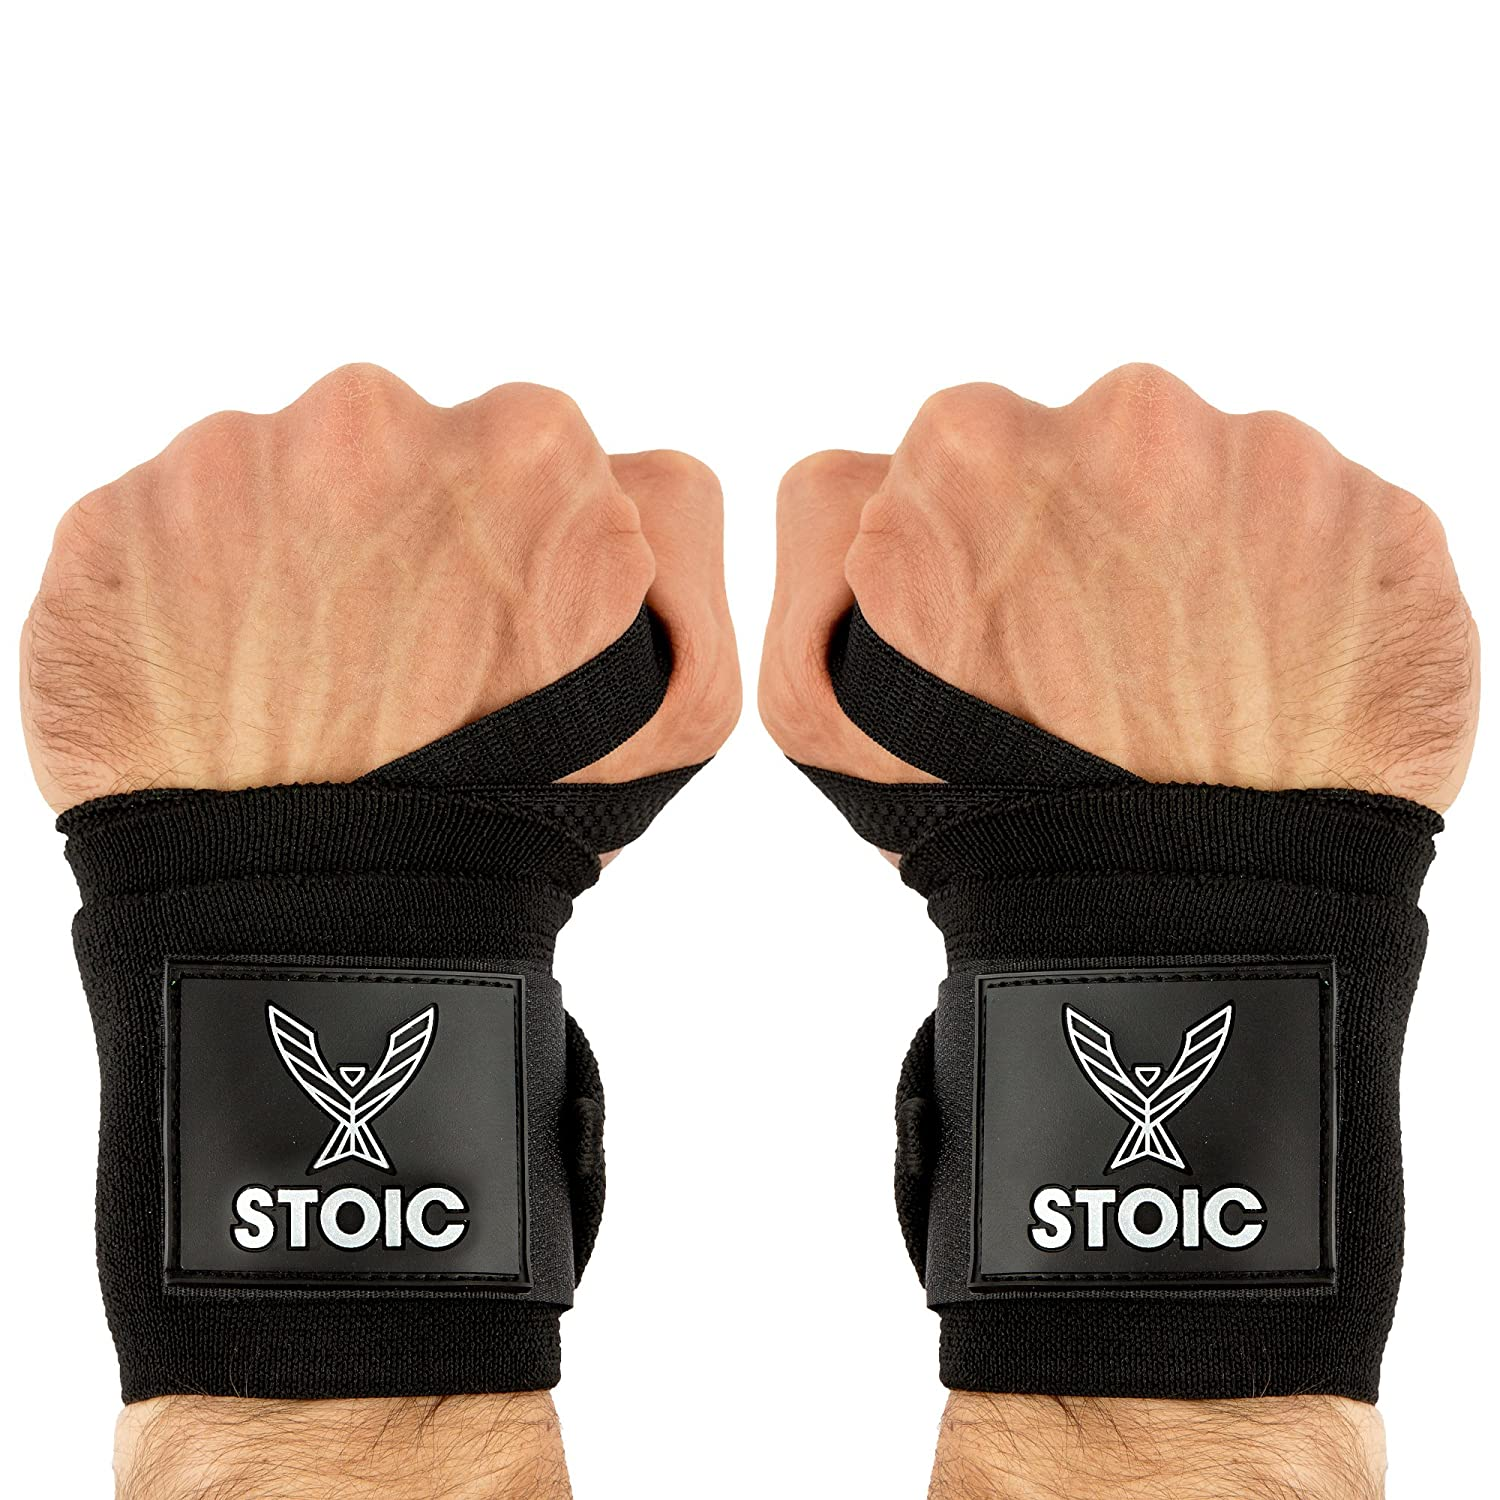 Top 5 Best Wrist Wraps Reviews in 2020 1